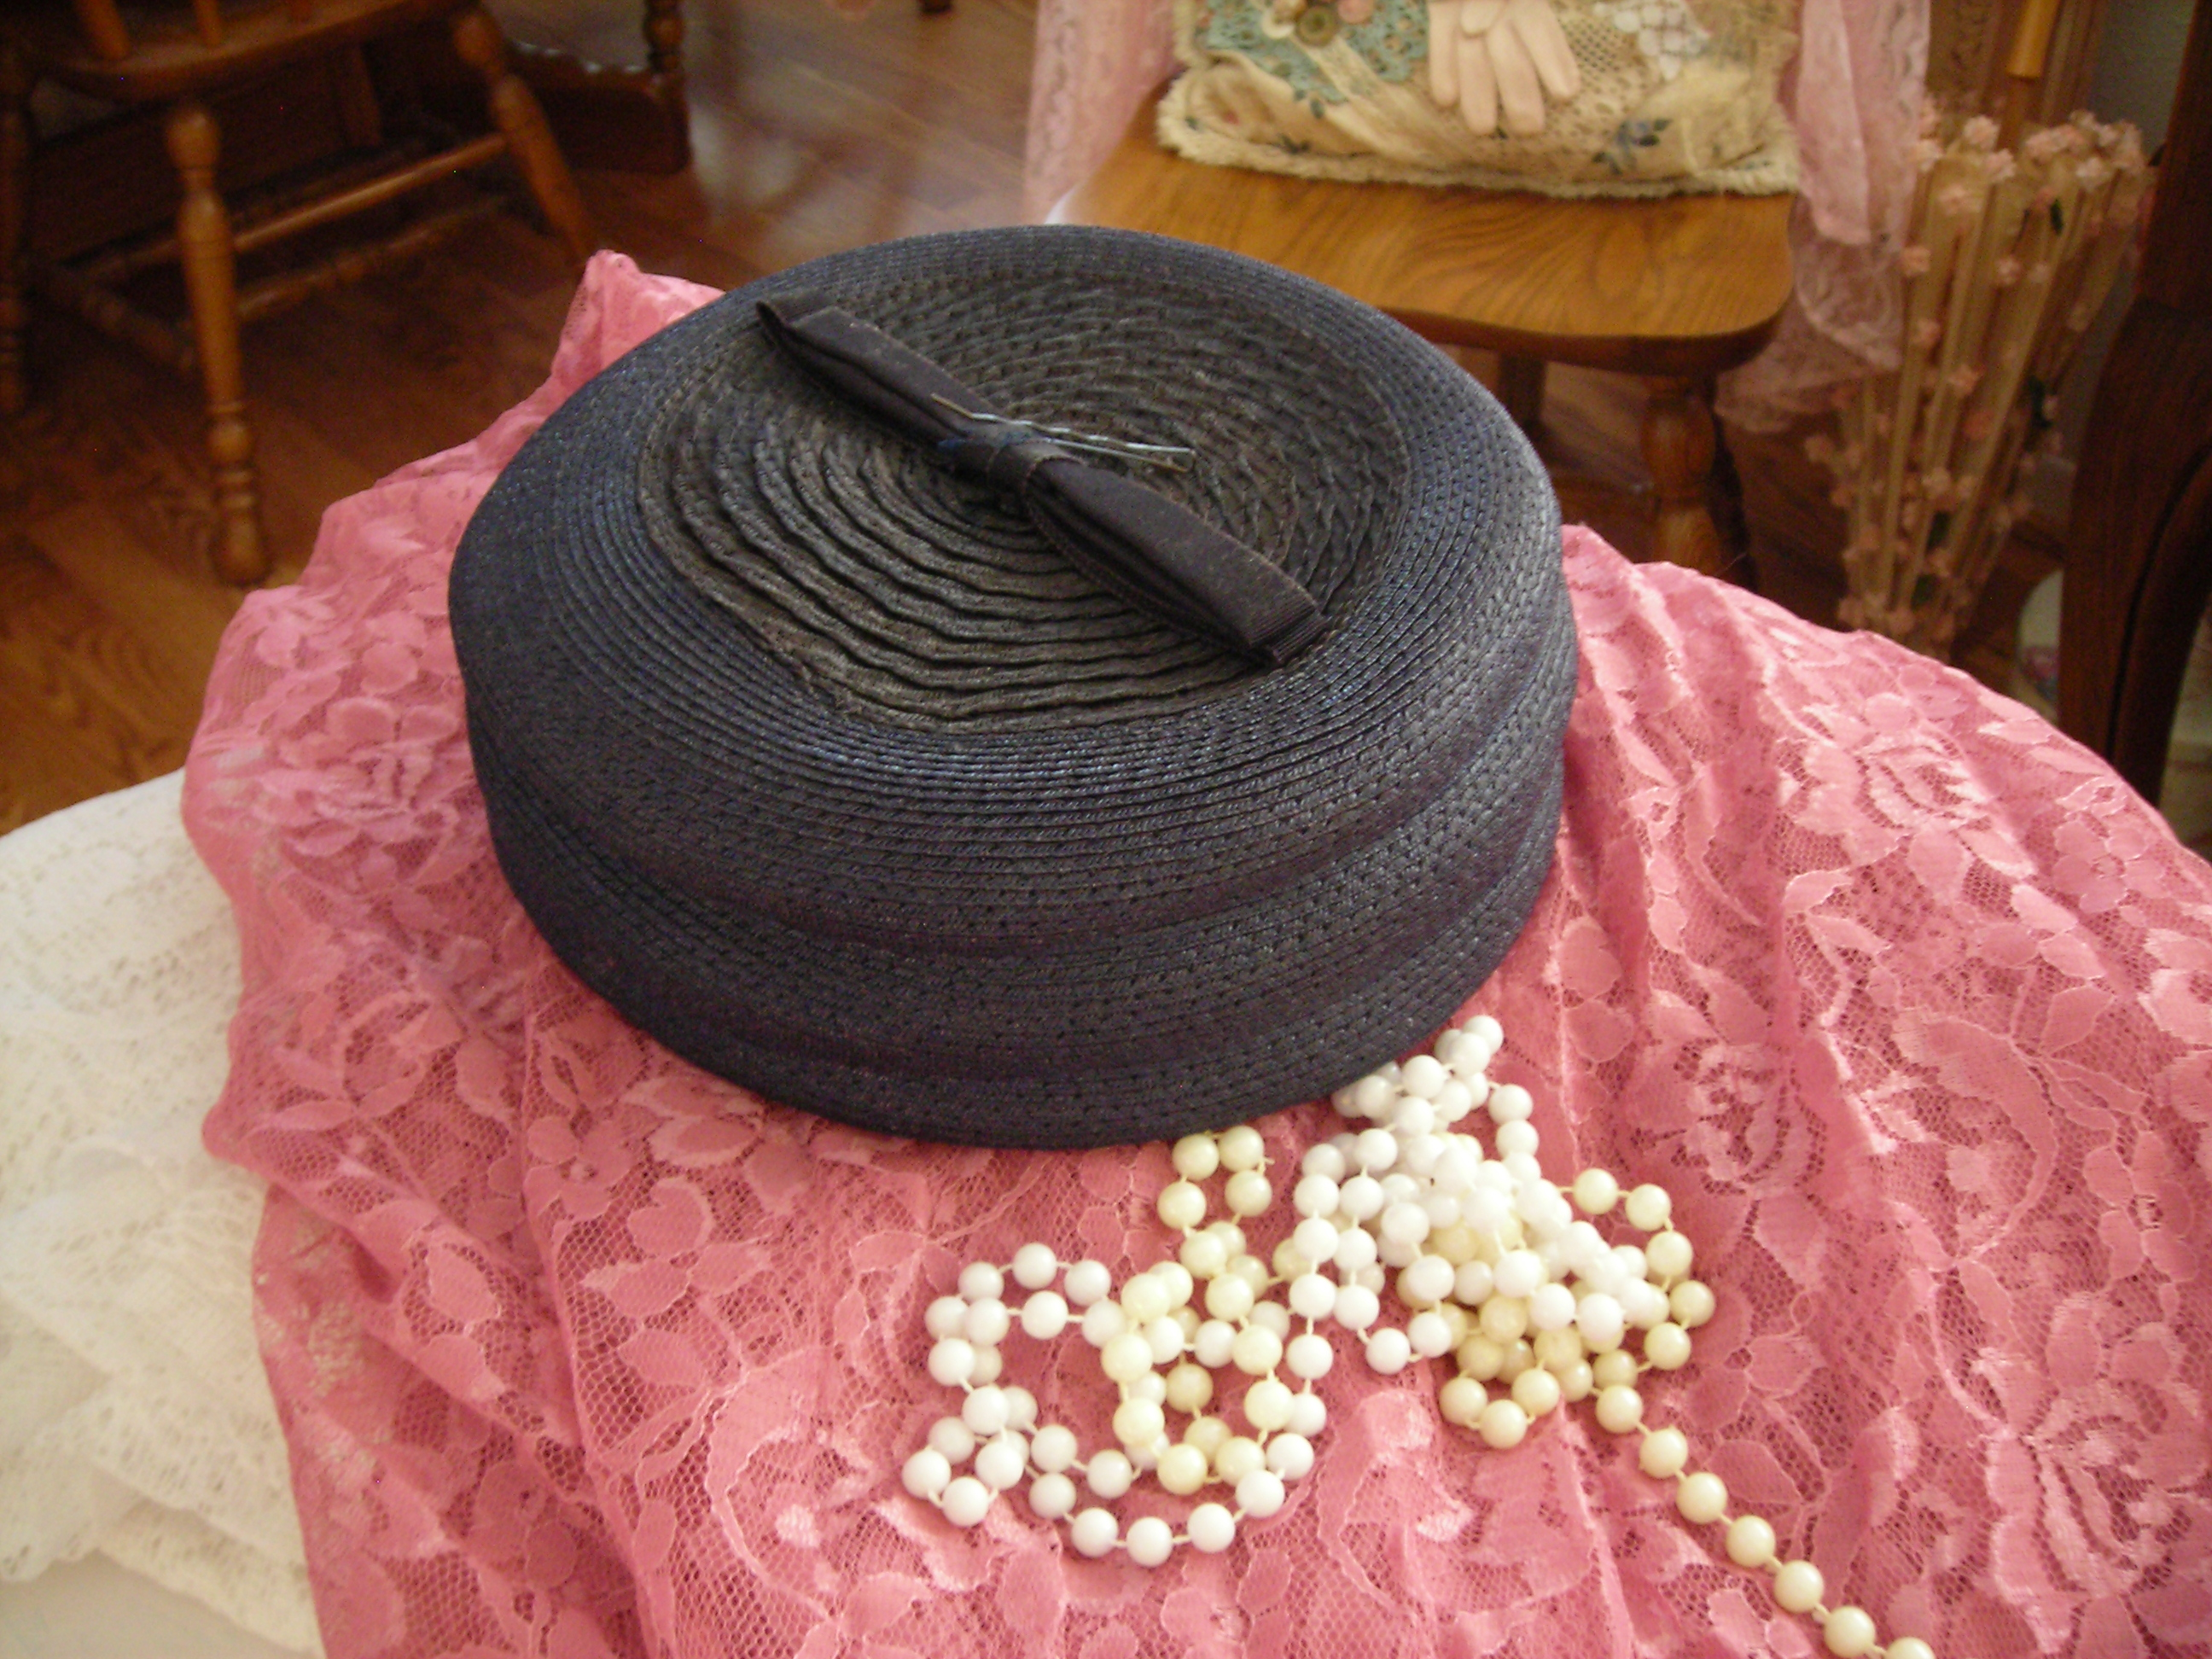 Navy pillbox hat (wonder what little old lady used to wear it??)